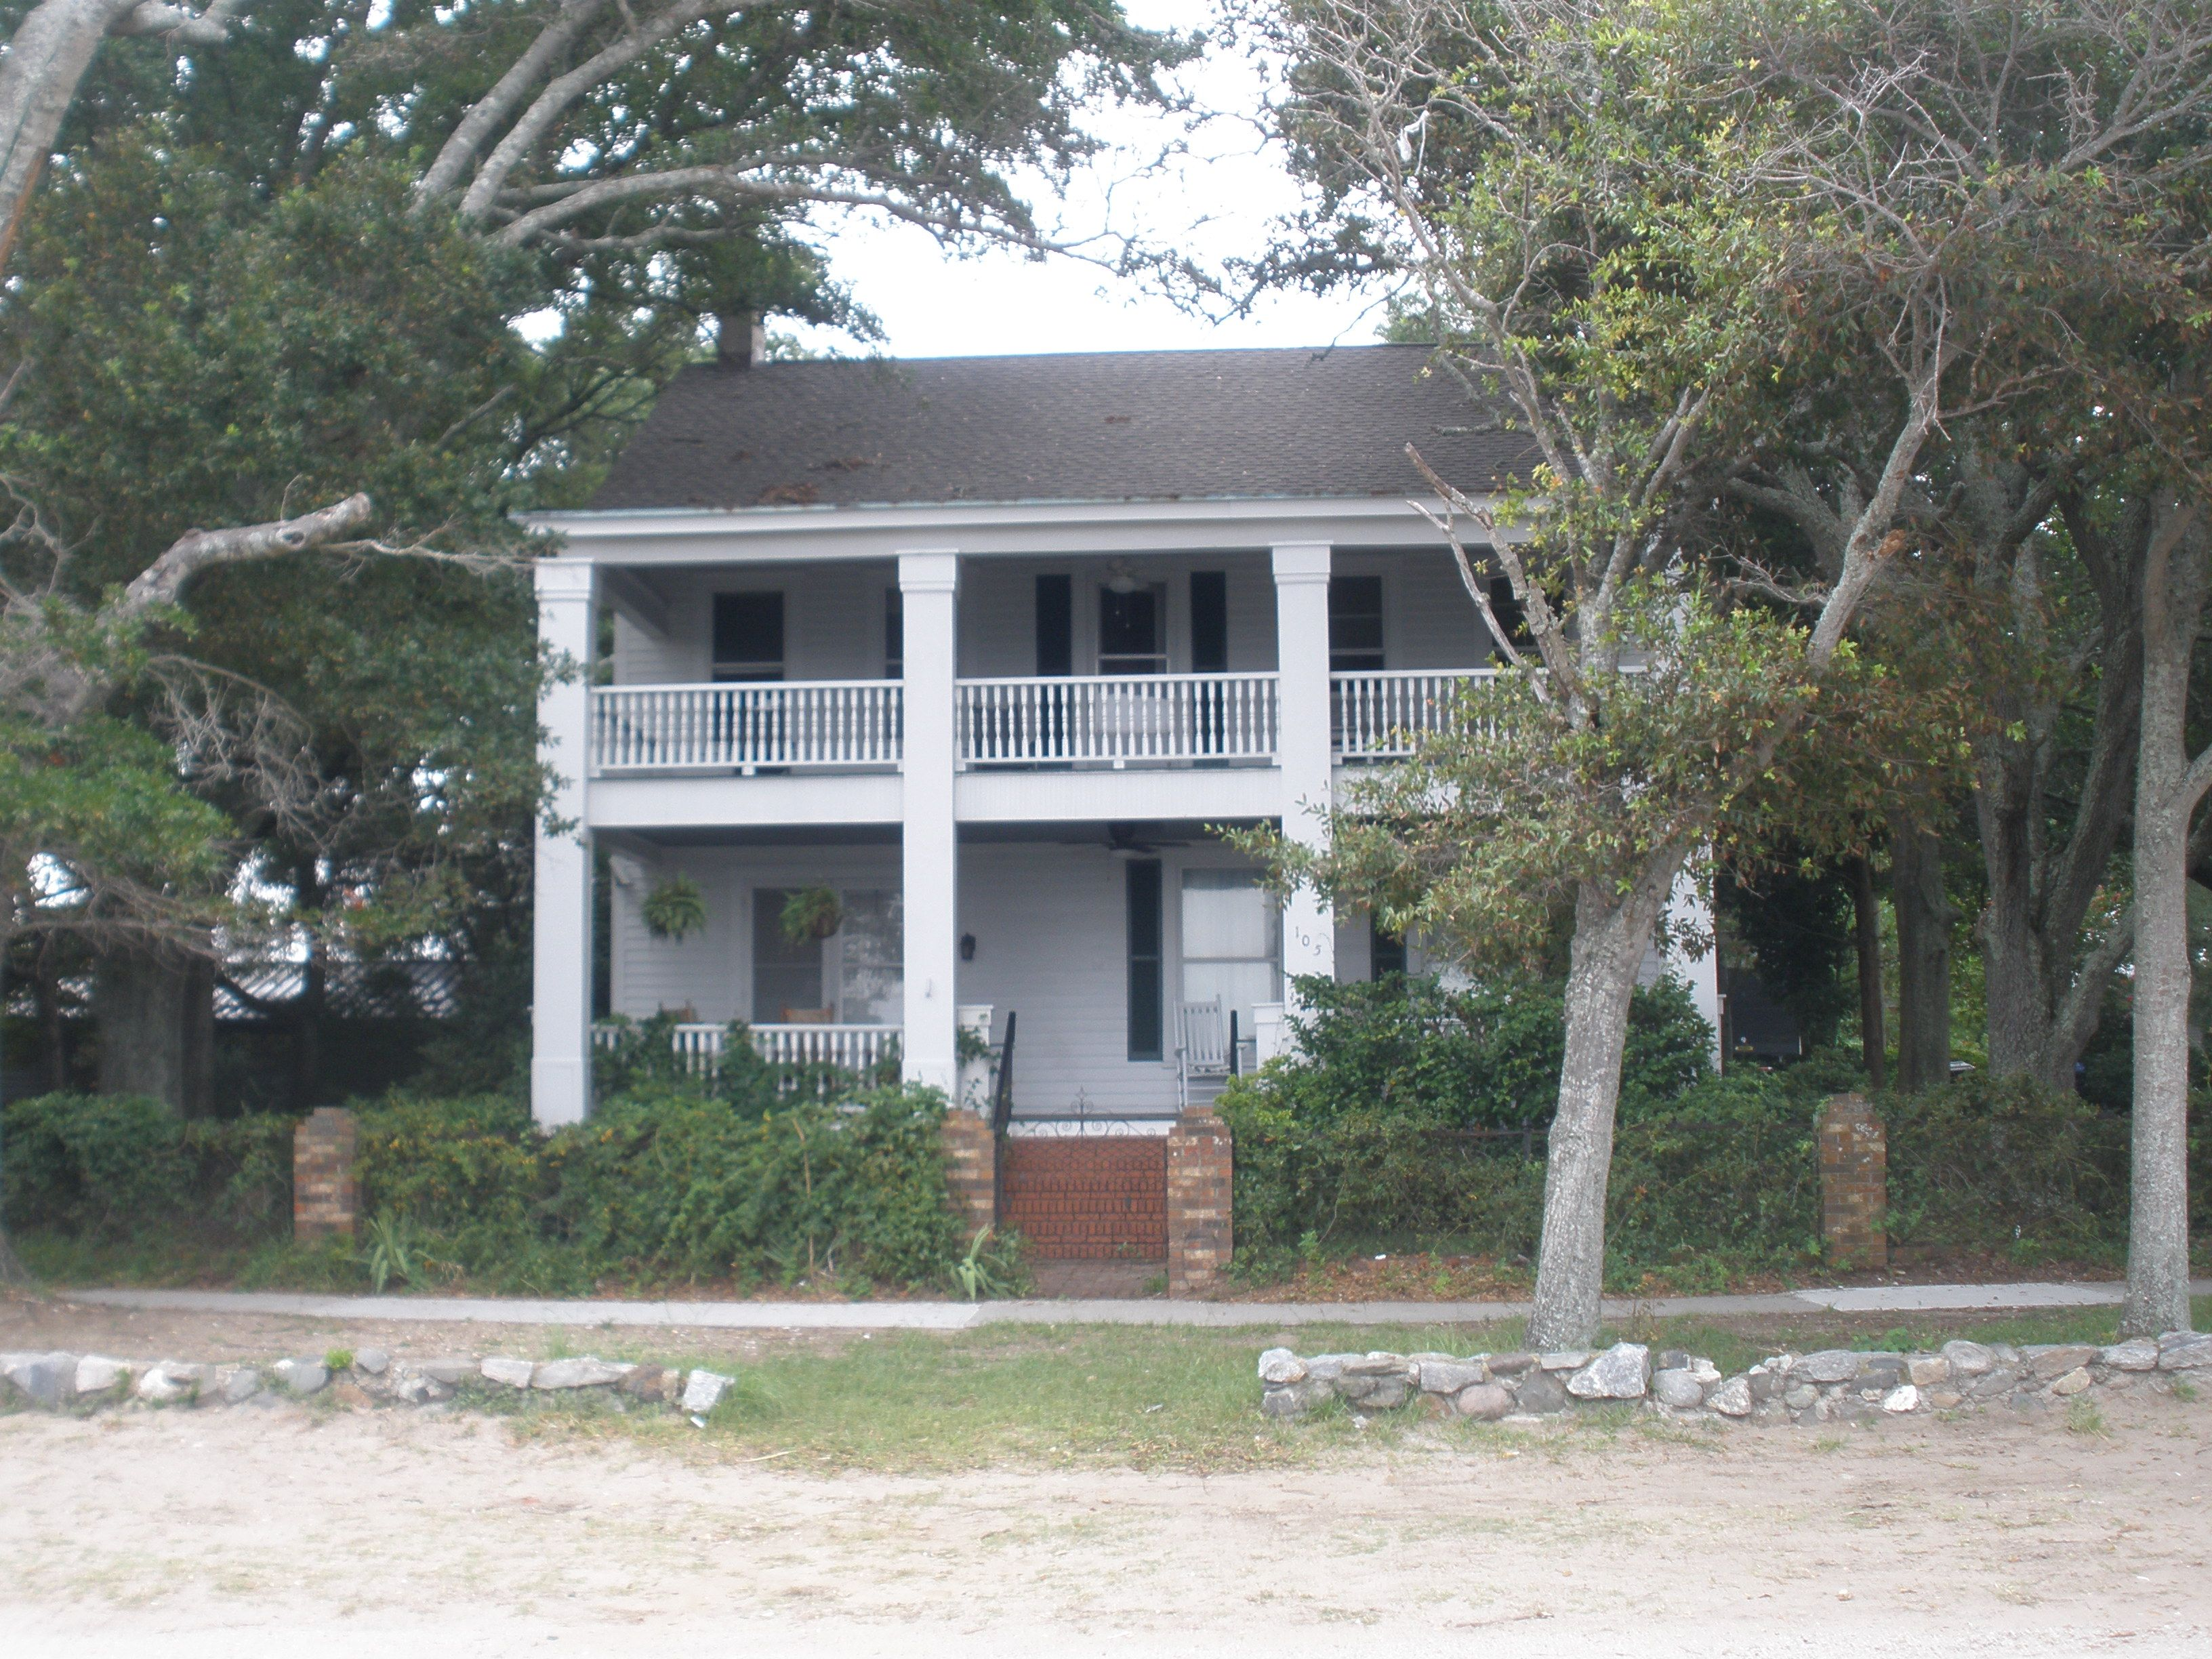 Big Jim S House From The Tv Show Under The Dome Oak Island Under The Dome House